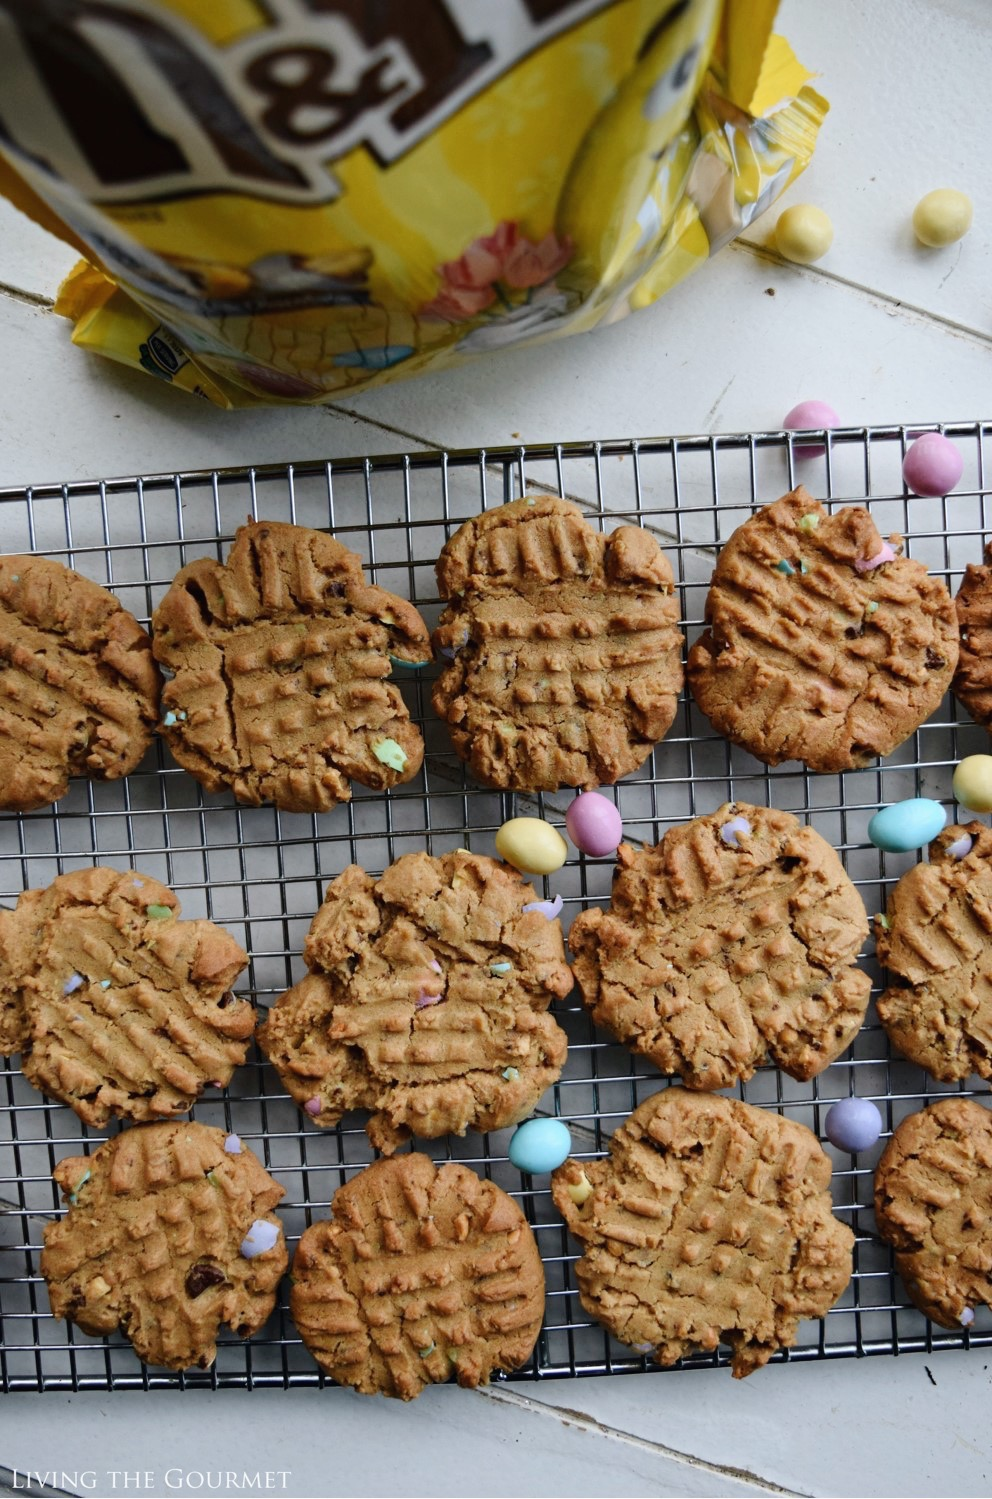 Living the Gourmet: Peanut Butter M&M's Cookies